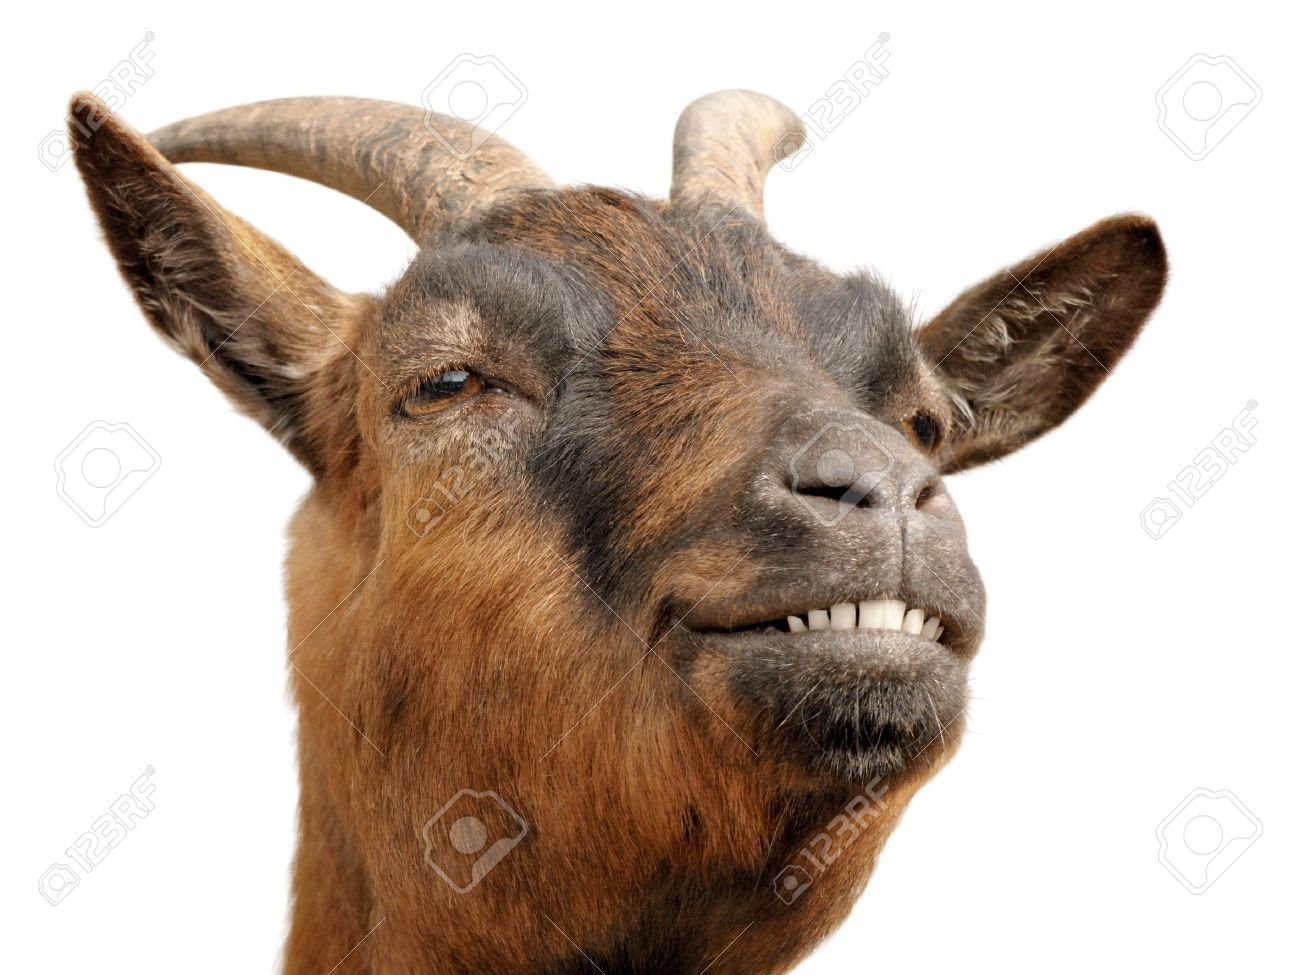 Cute animal portrait of a small goat looking happy and cheerful - 7055057